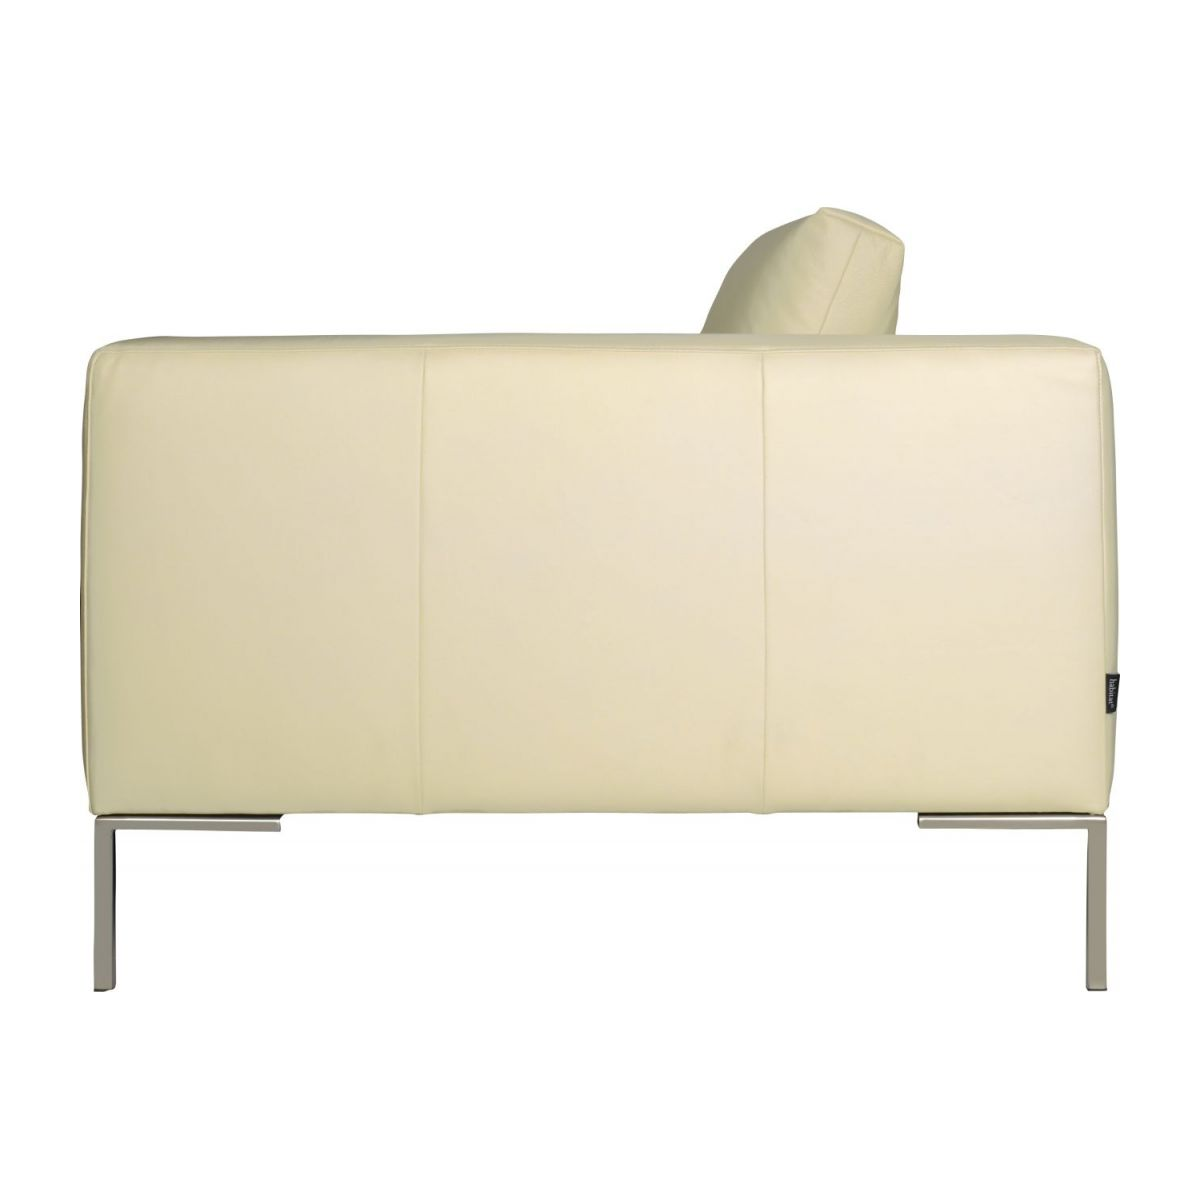 3 seater sofa in Eton veined leather, cream n°5